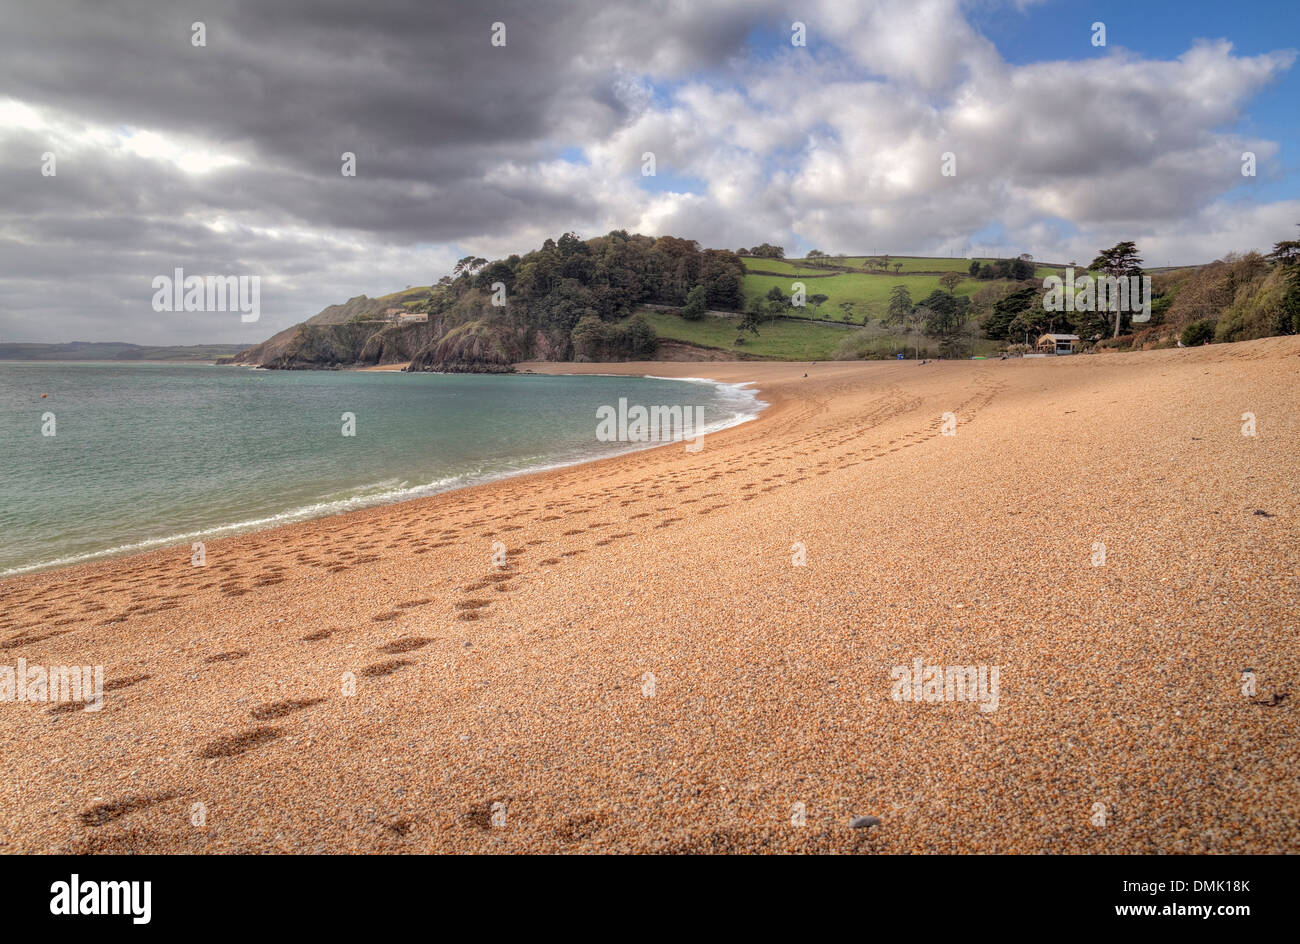 Blackpool Sands near Dartmouth, Devon, England. - Stock Image